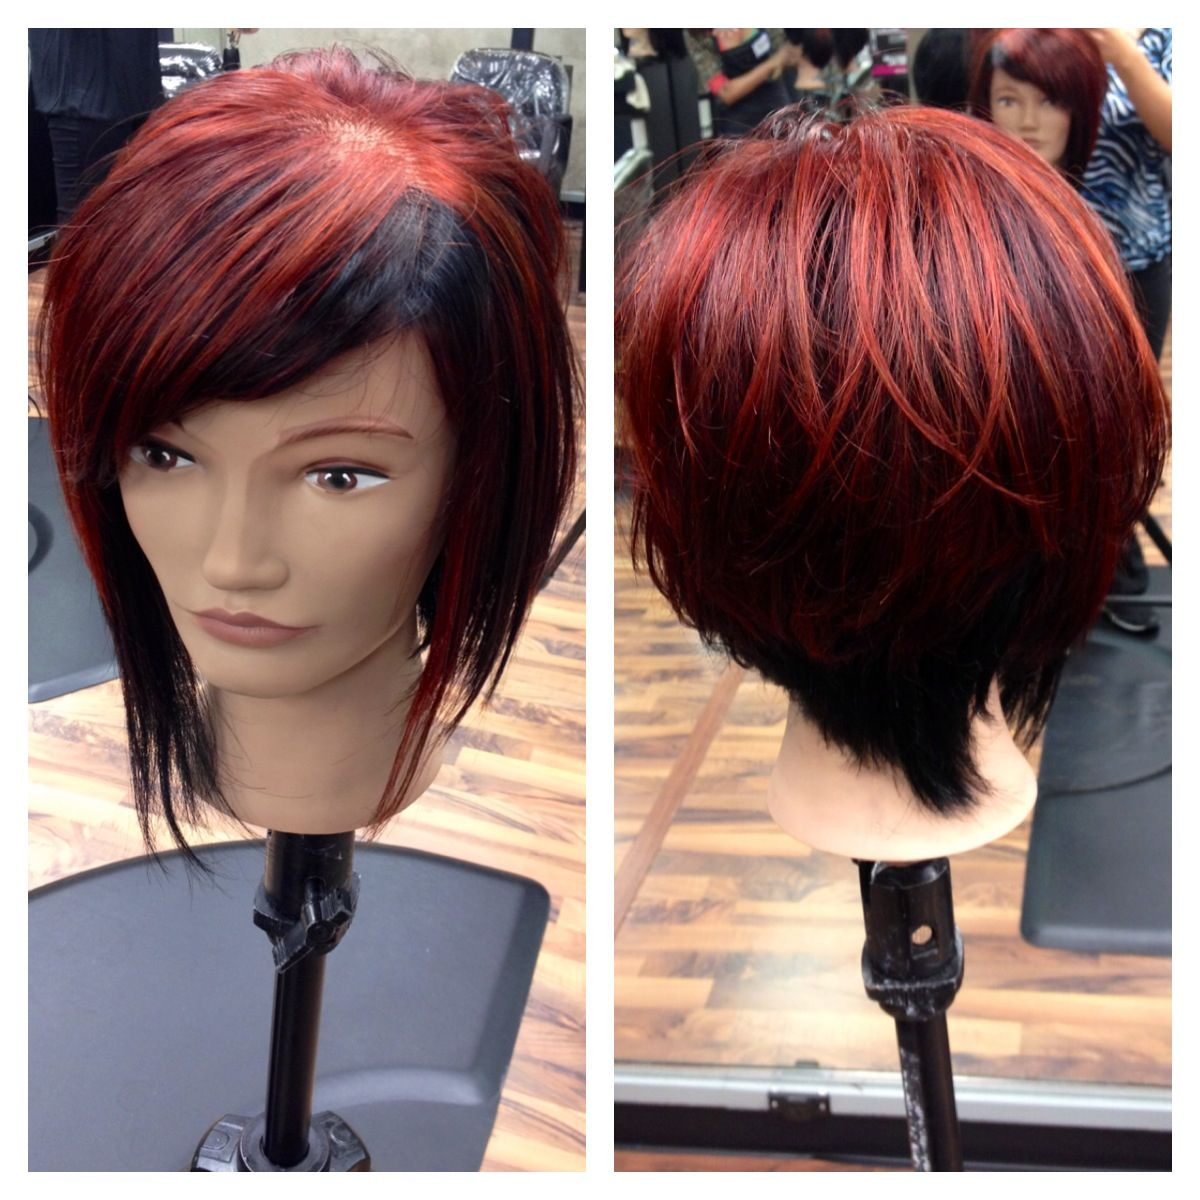 Images about hair colors and styles on pinterest - Color Blocking Red And Black Hair